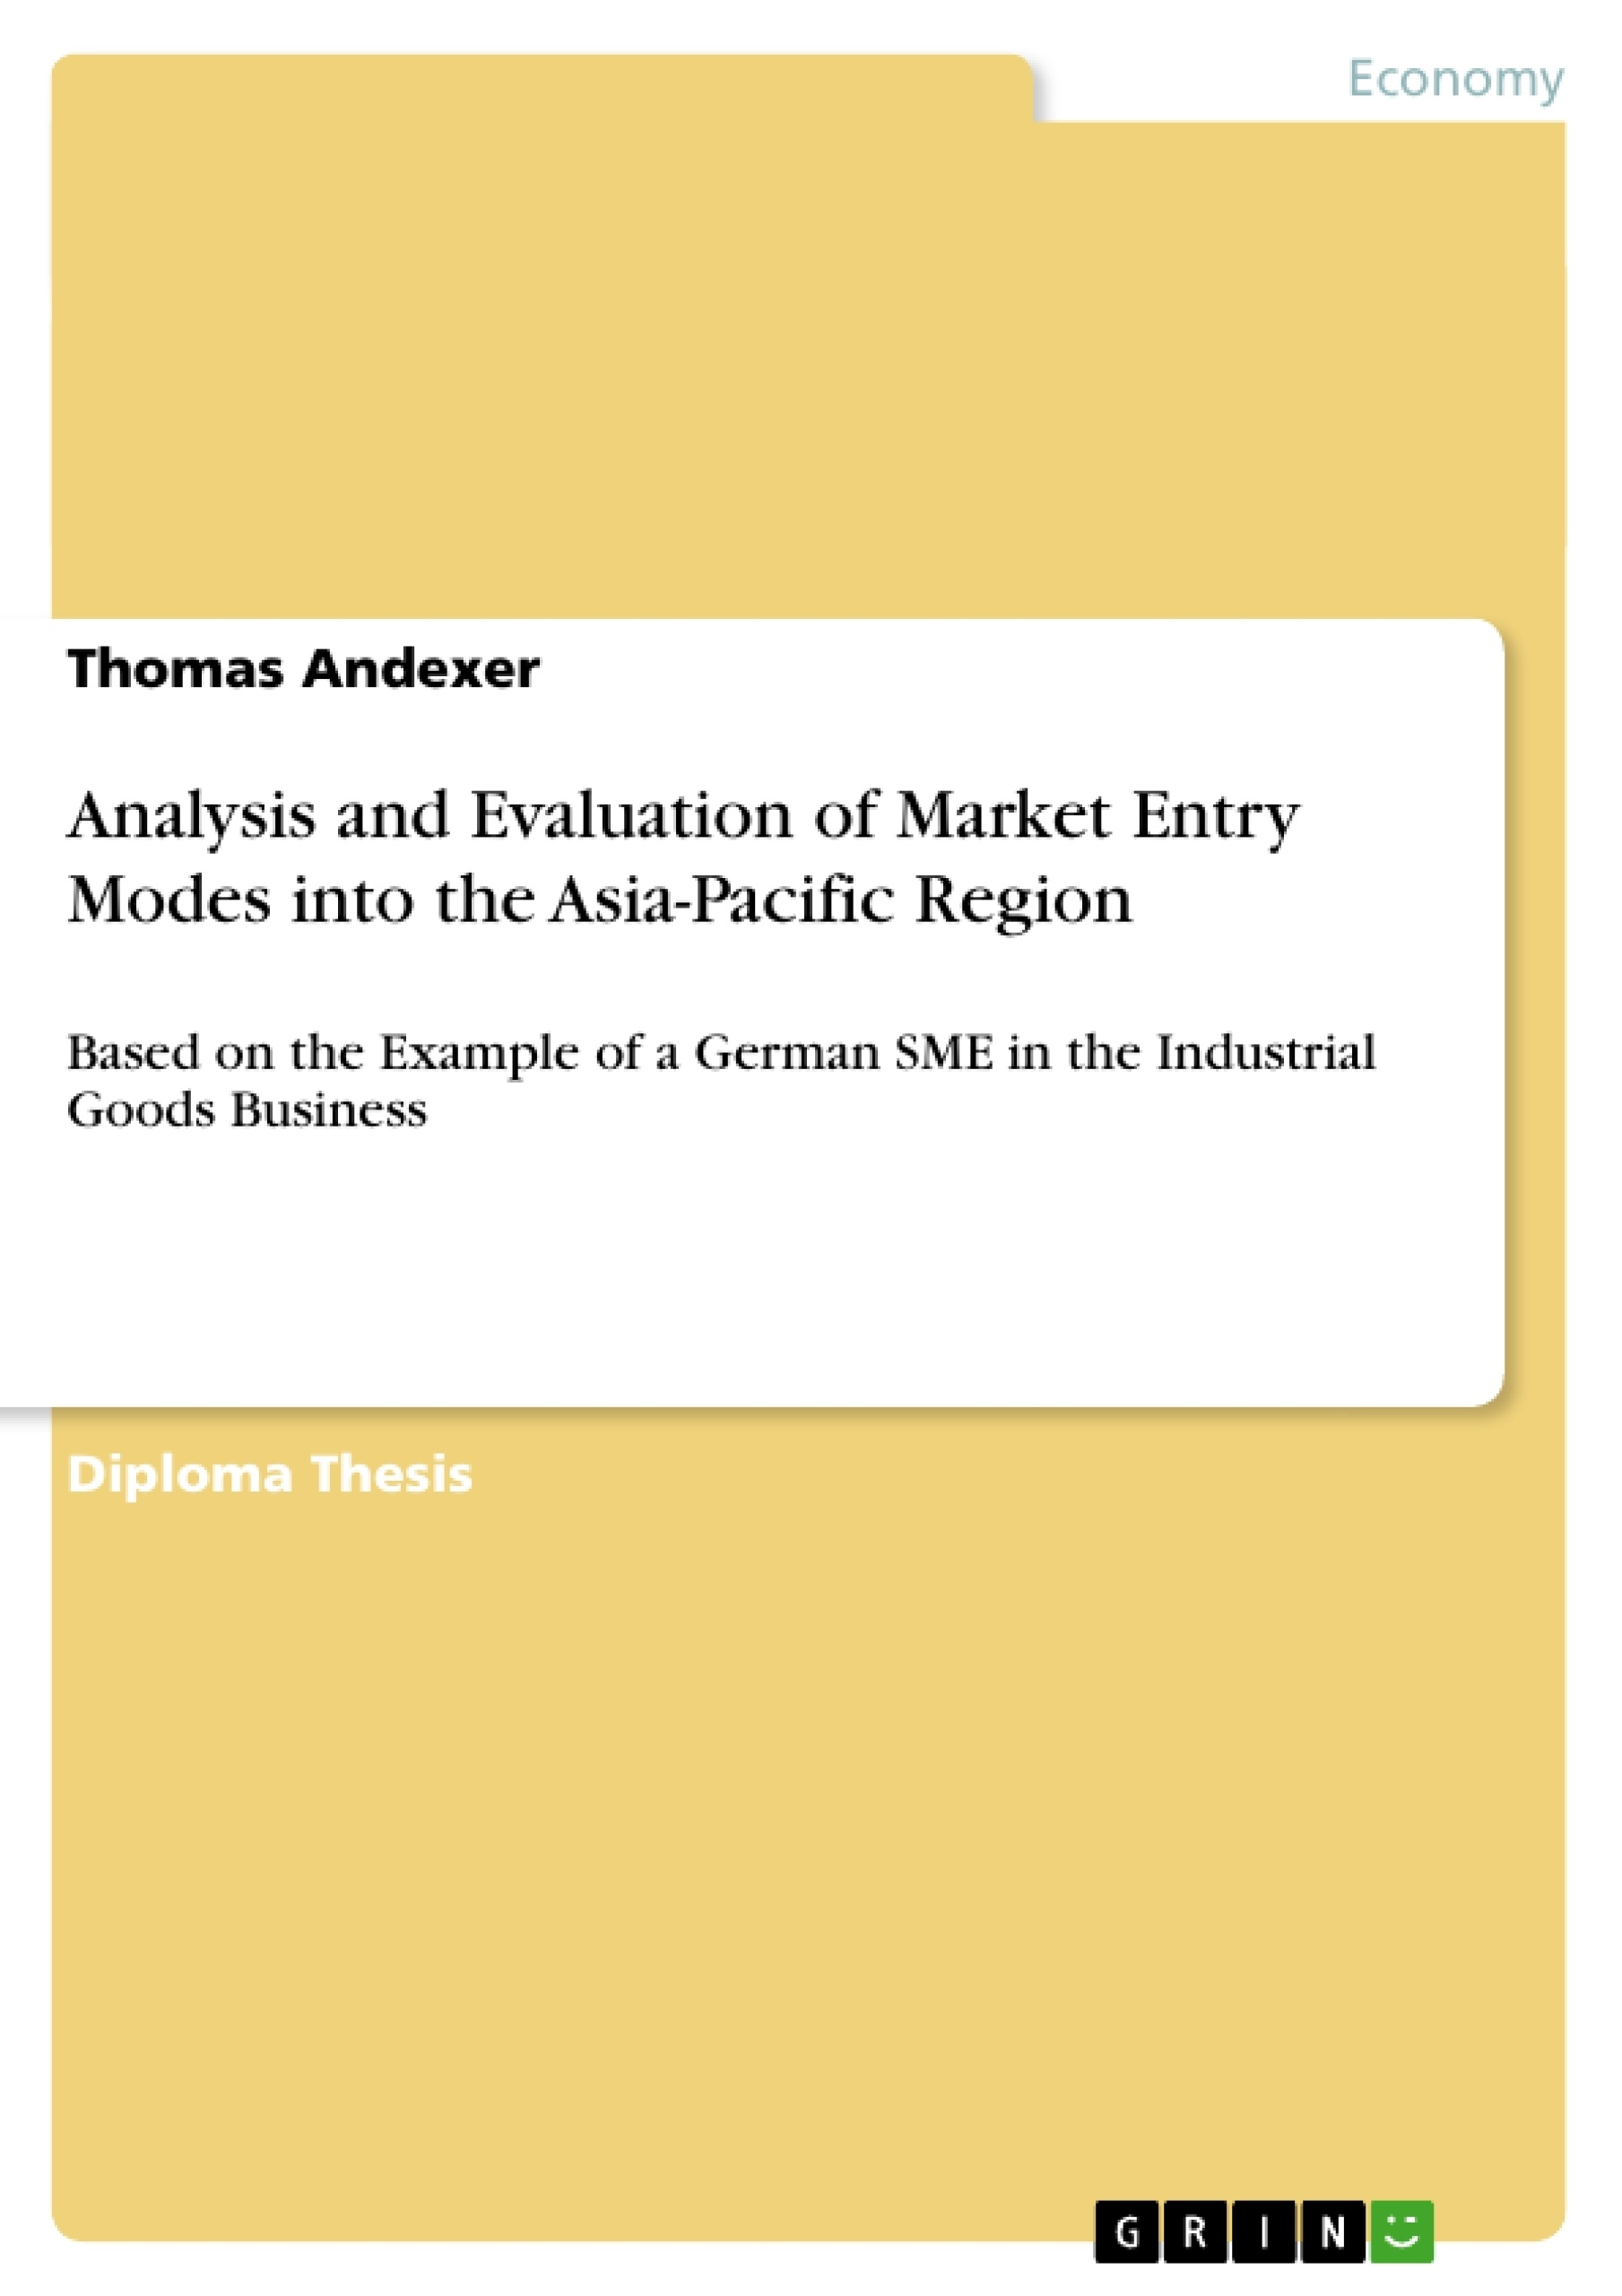 entry mode of asian pacific breweries essay Study of heineken acquired asia pacific breweries stage 1: this essay will be arguing that blackberry in asia (rim's) entry into the chinese market during.